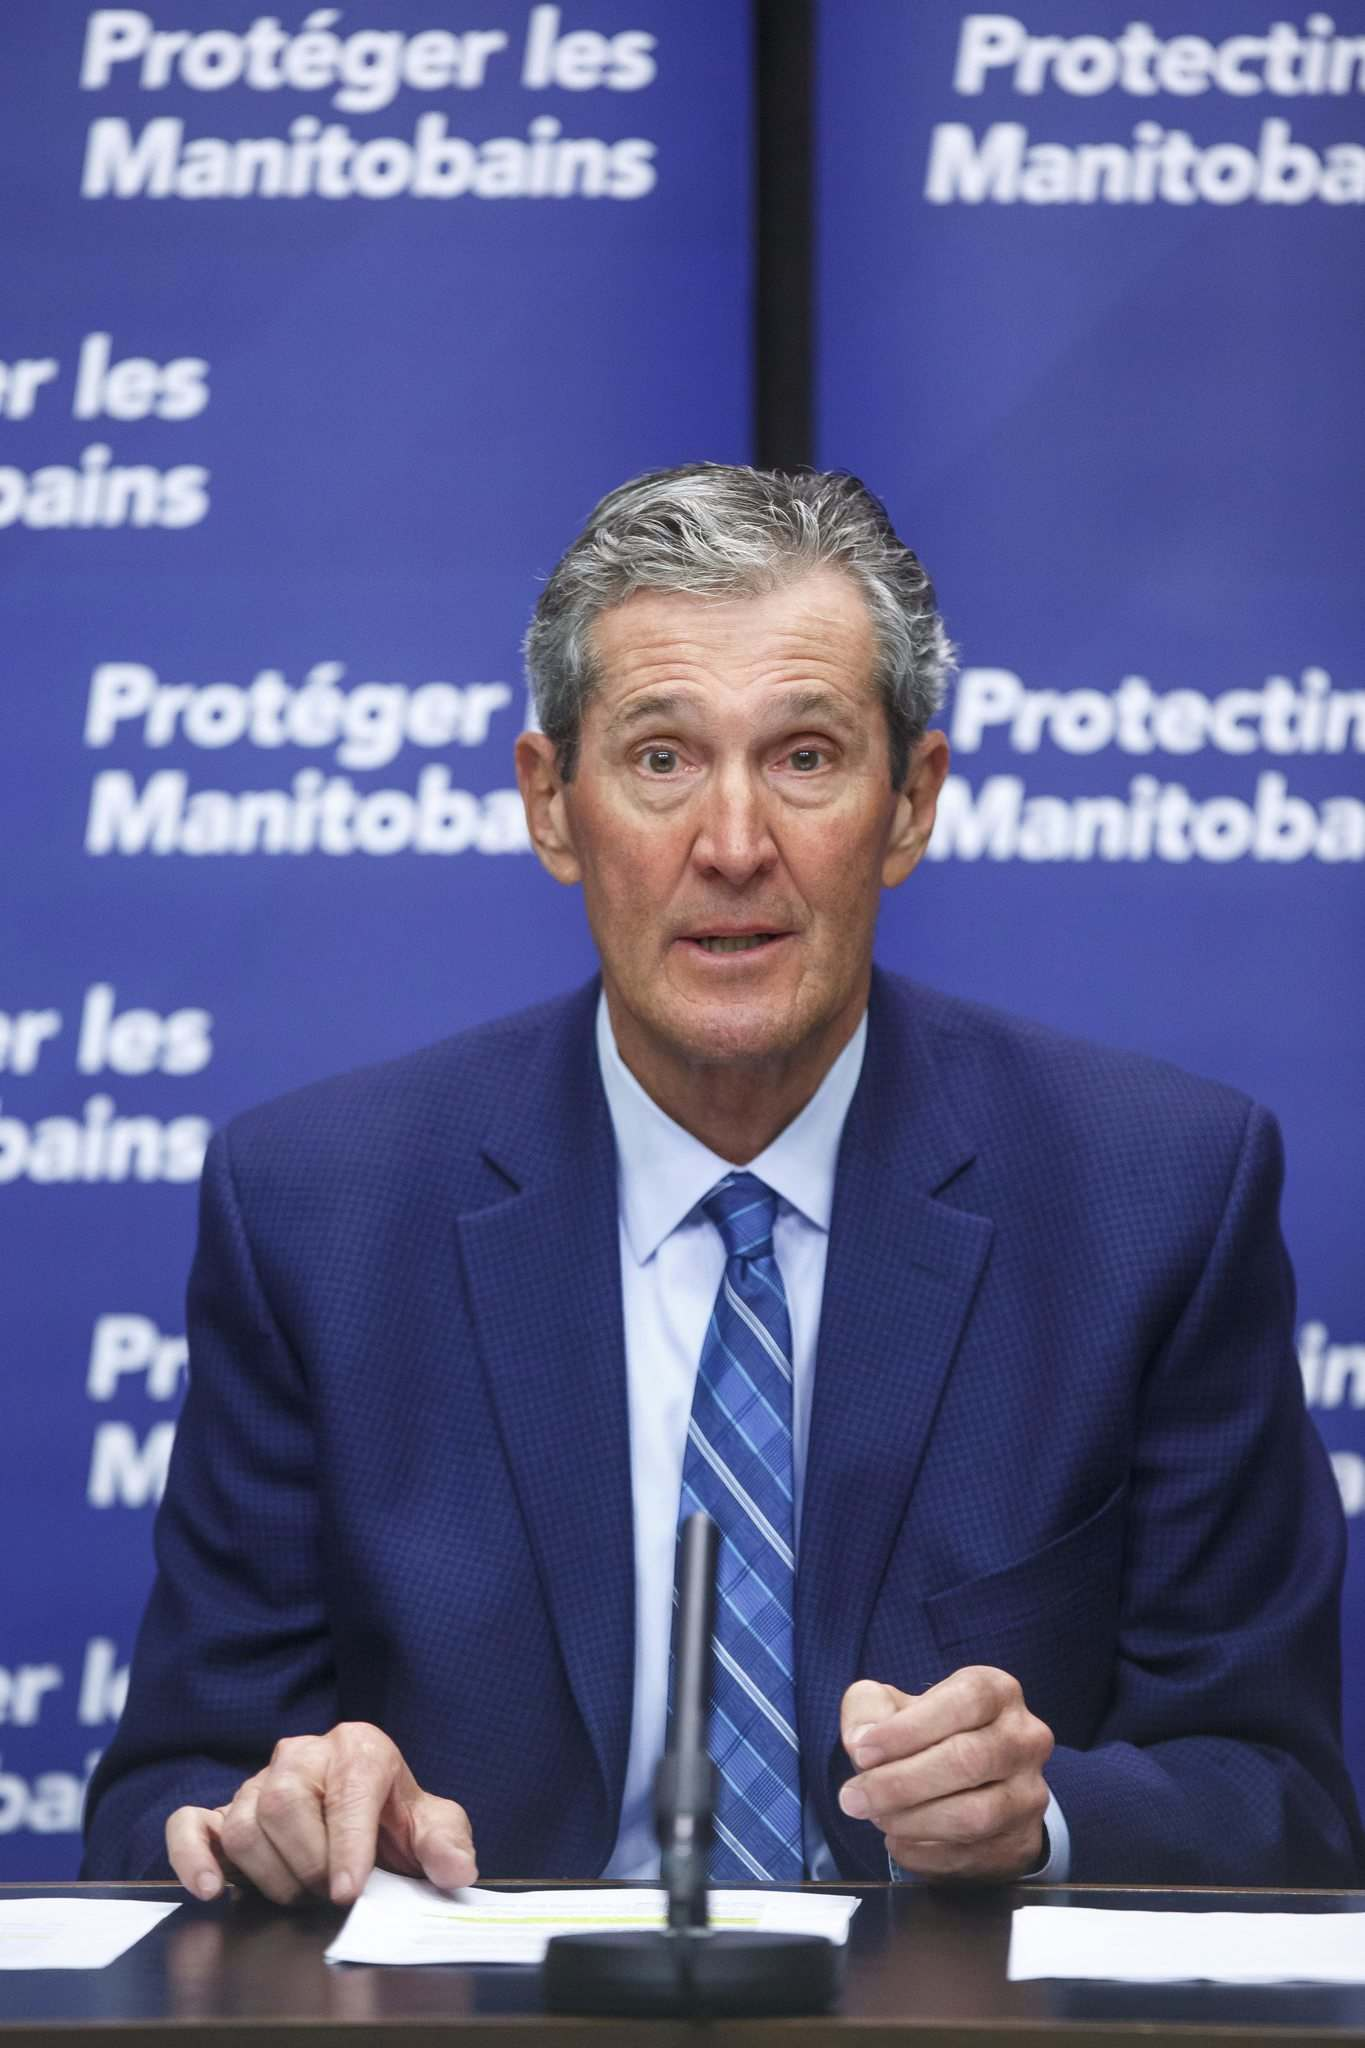 """""""We've got some tough weeks ahead of us,"""" Premier Brian Pallister said at a news conference Friday."""